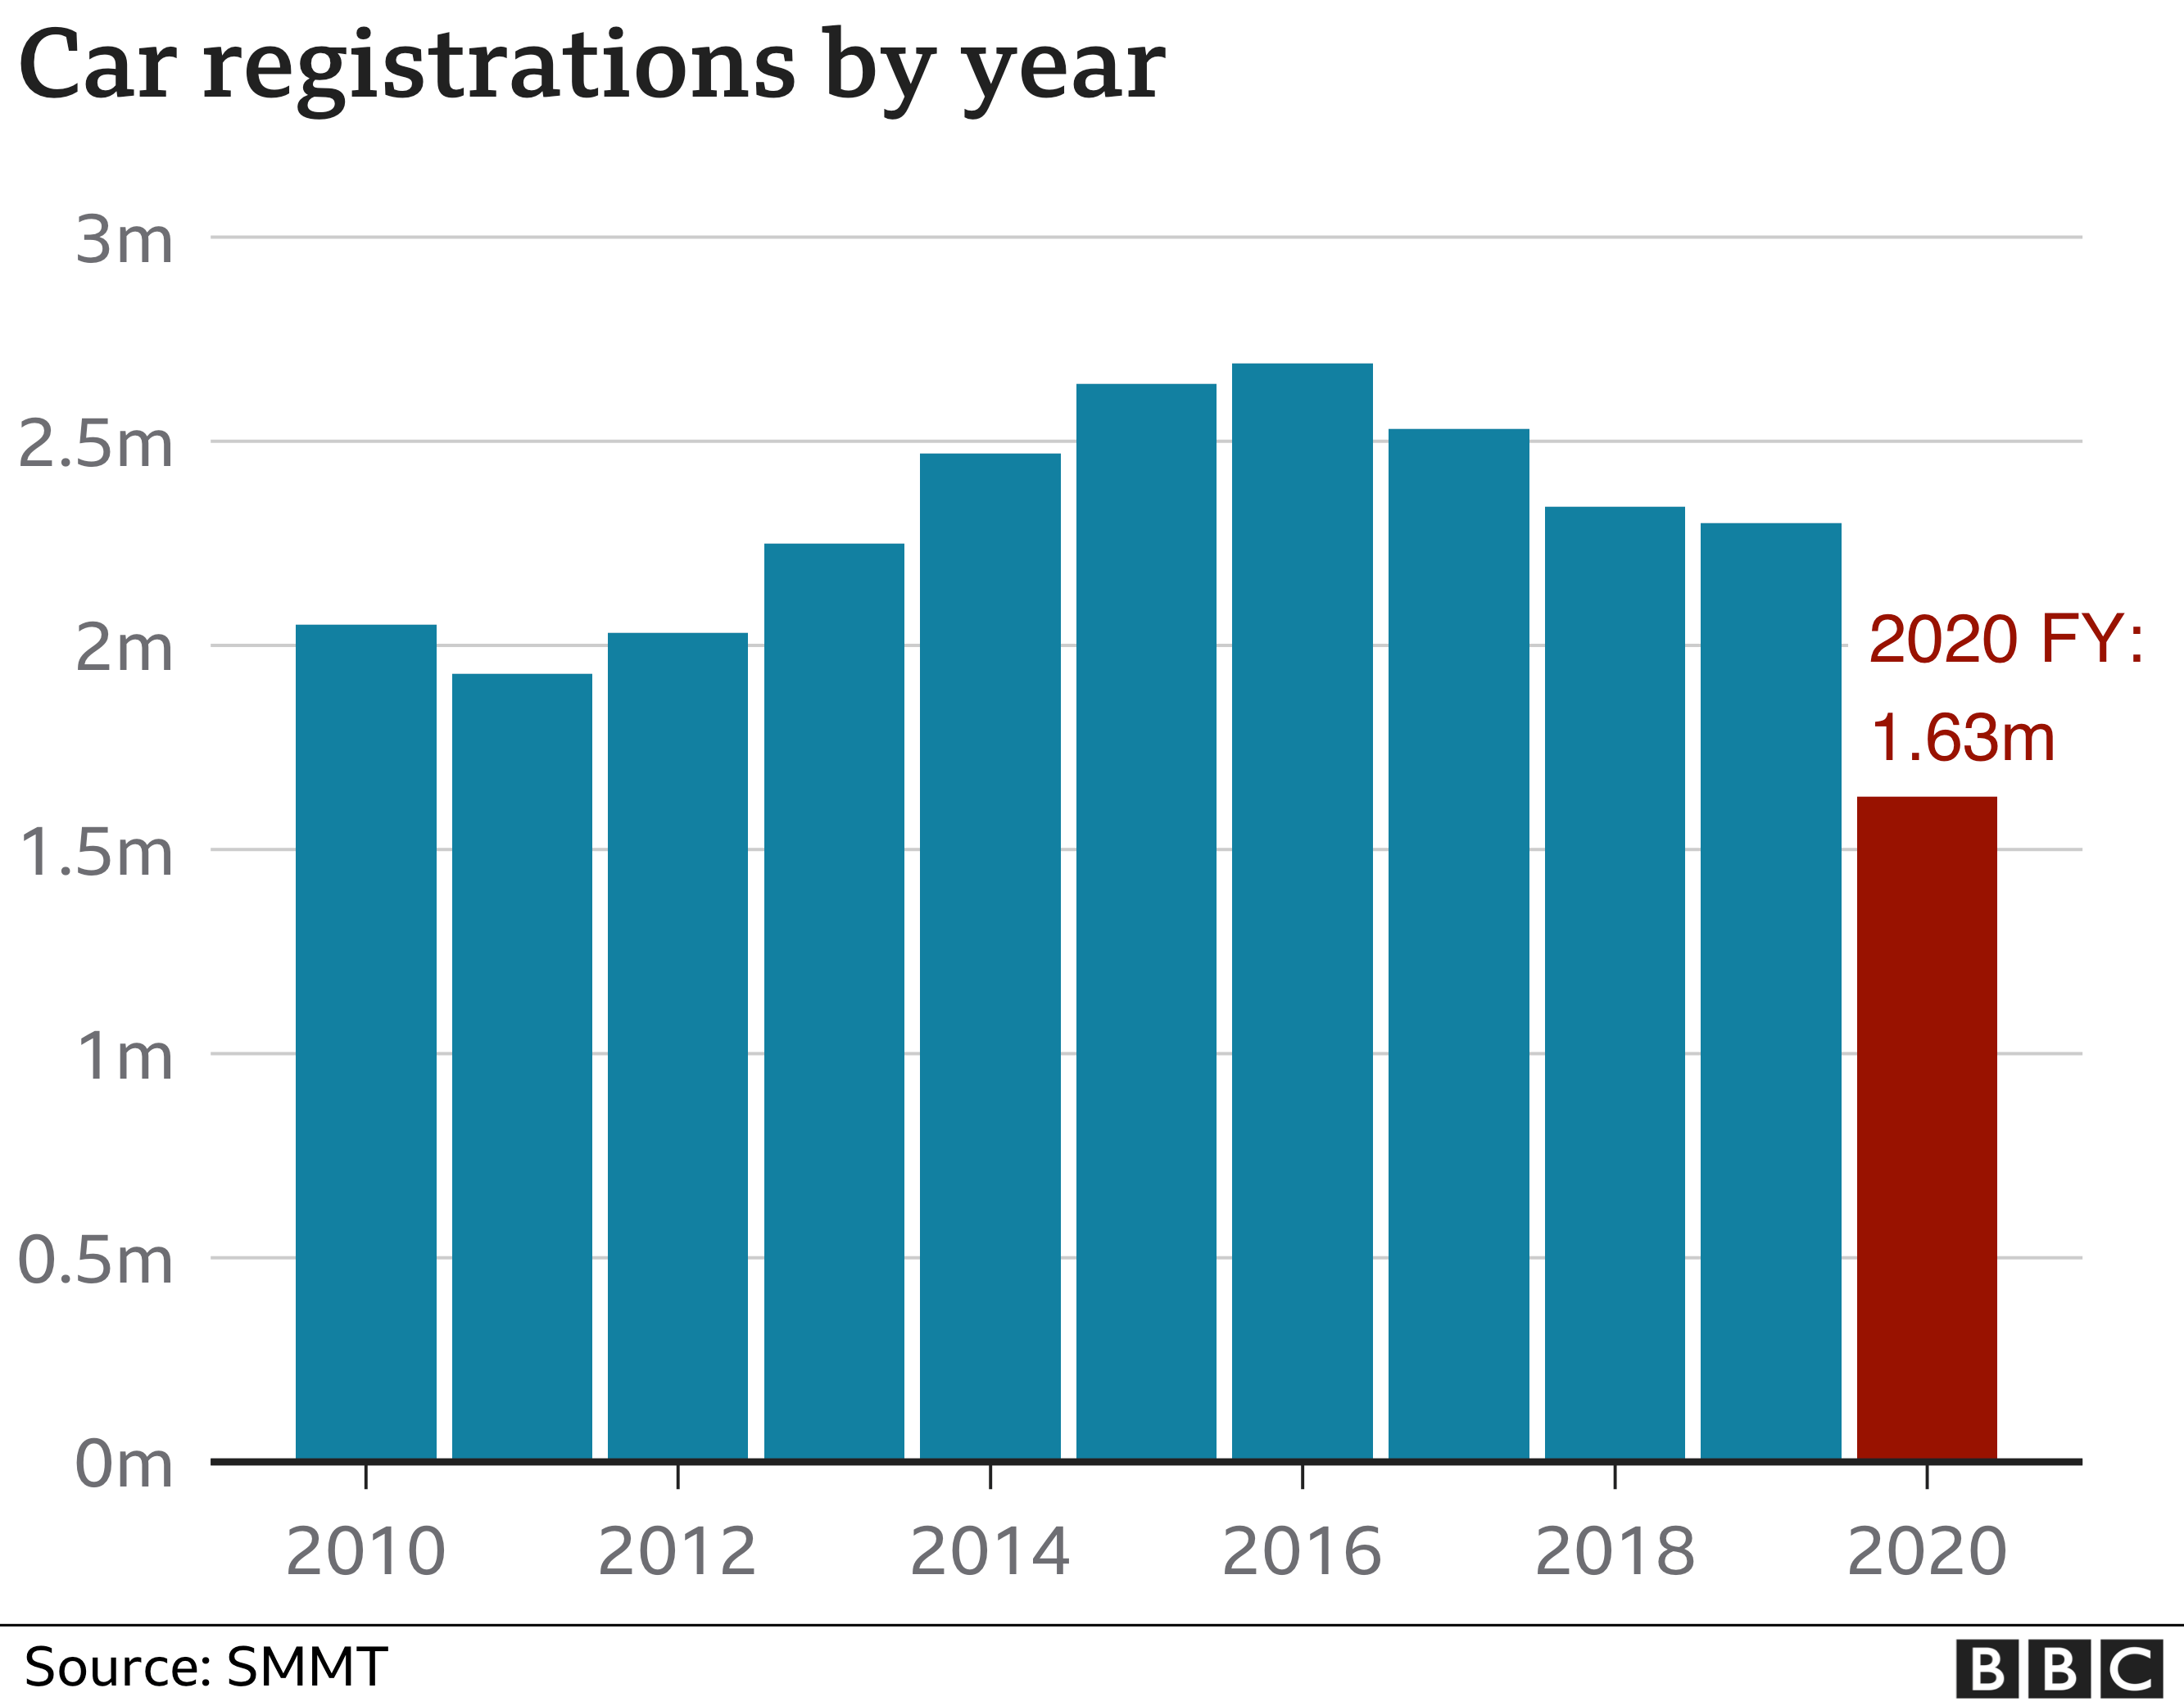 Car registrations by year